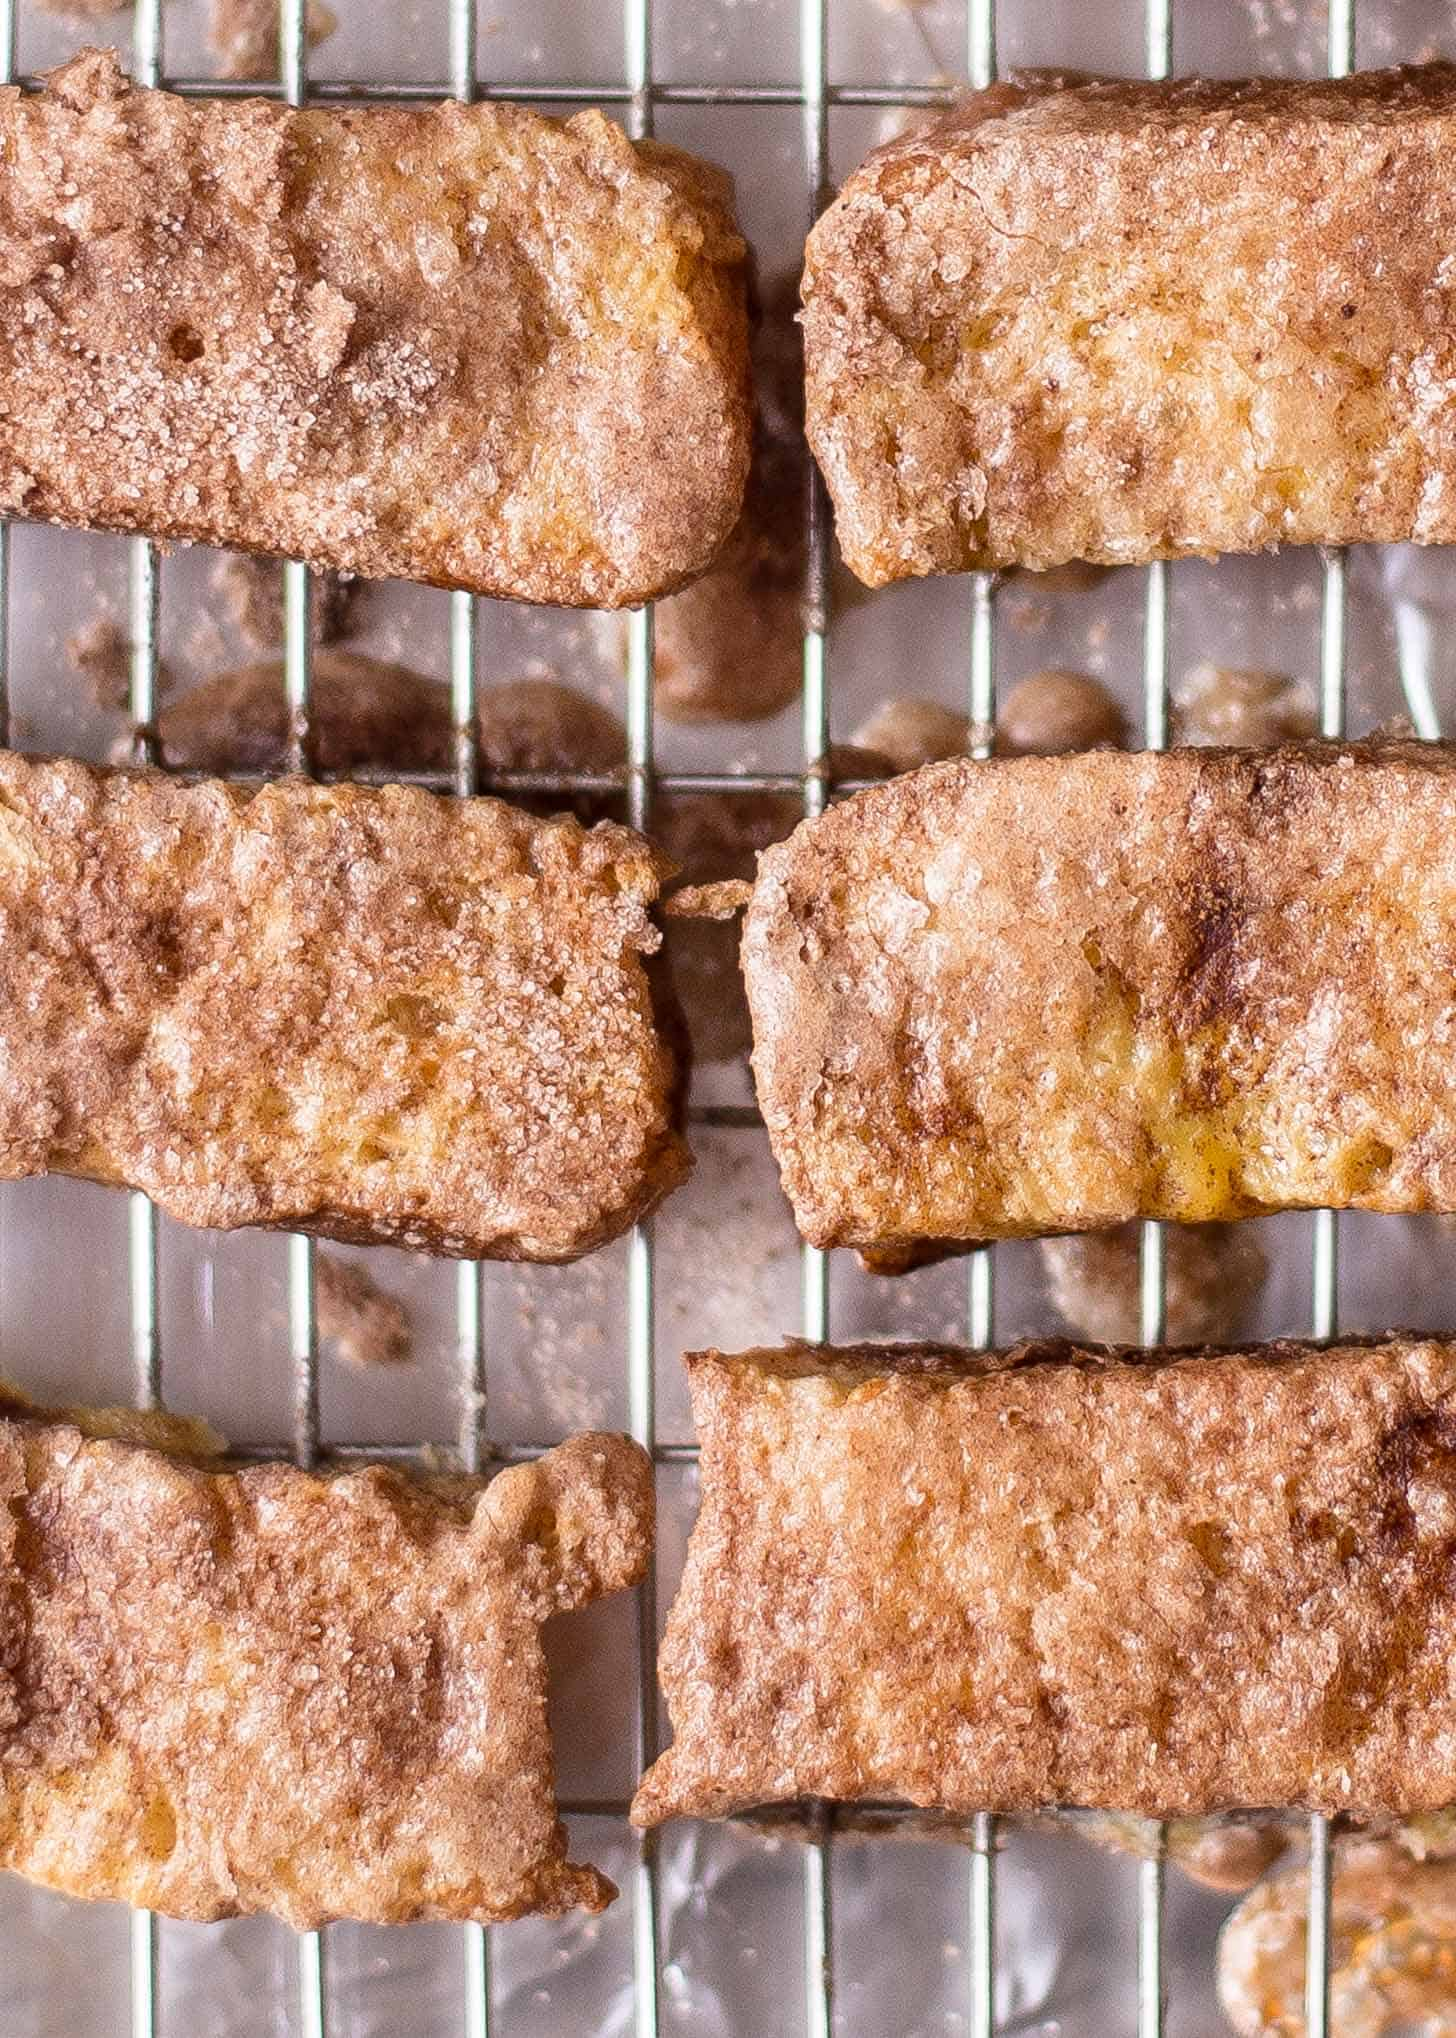 Baked Cinnamon French Toast Sticks